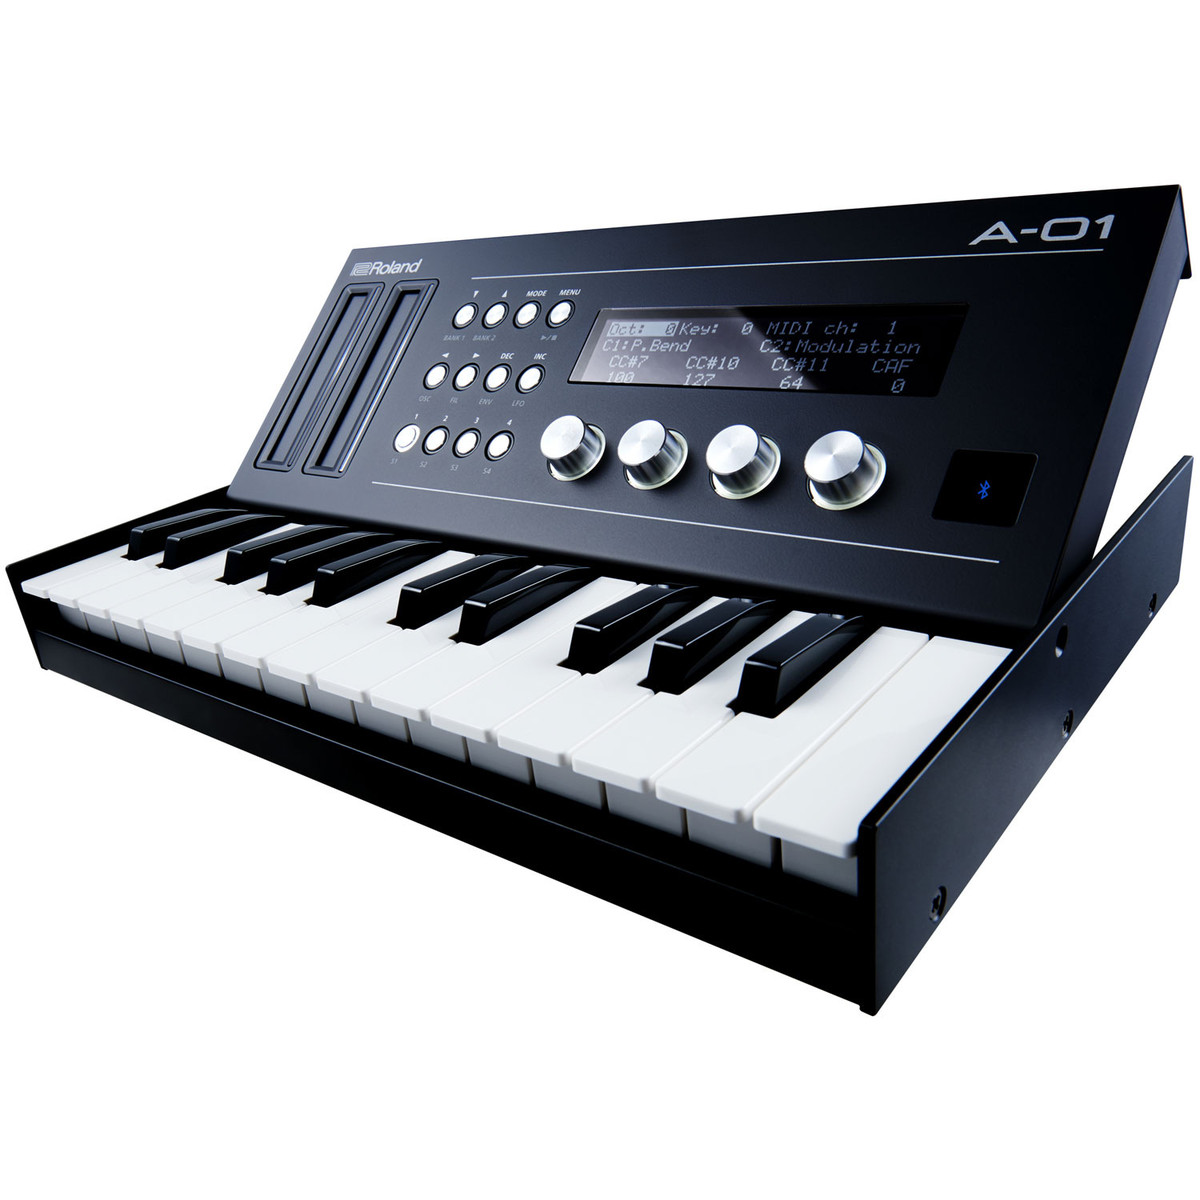 roland boutique a 01 midi controller and sound generator w keyboard at gear4music. Black Bedroom Furniture Sets. Home Design Ideas